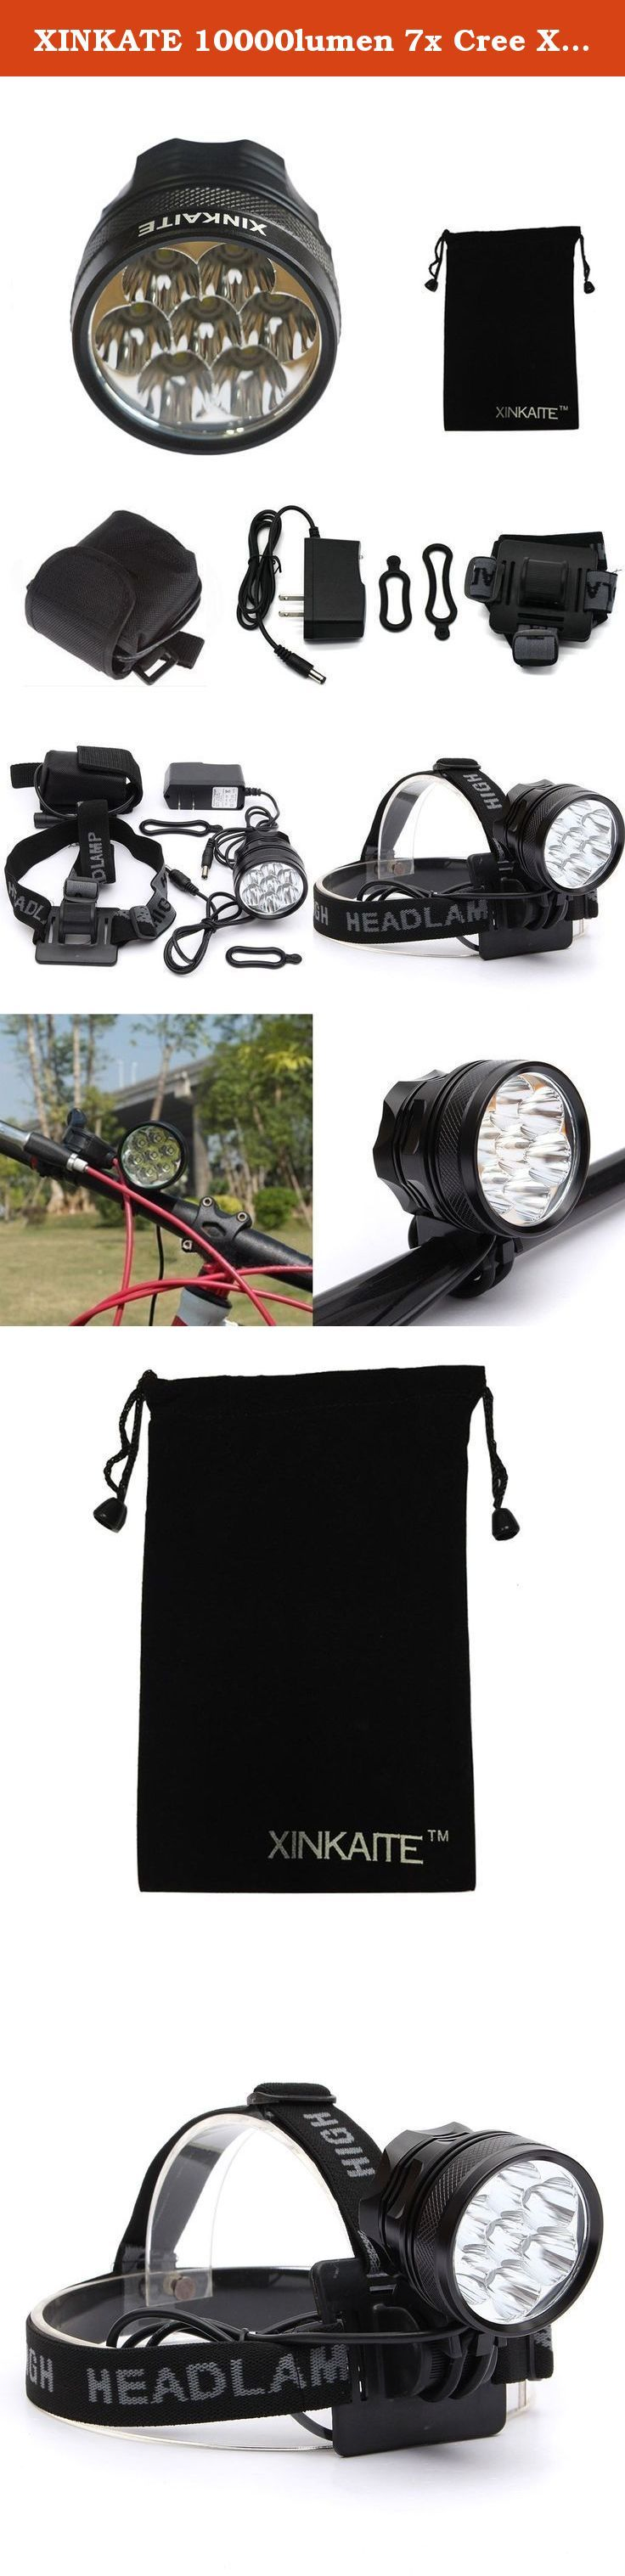 XINKATE 10000lumen 7x Cree Xm-l T6 MTB Mountain Bike Bicycle Cycling Head Light Headlamp+charger. Specification Can be used as Headlamp or Bicycle Light. 1 x 7*CREE XM-L T6 Led Light unit. 2 x Rubber ring for installation. 1 x Battery Pack 1 x Holster For Battery Pack. 1 x Charger . 1 x Headband.